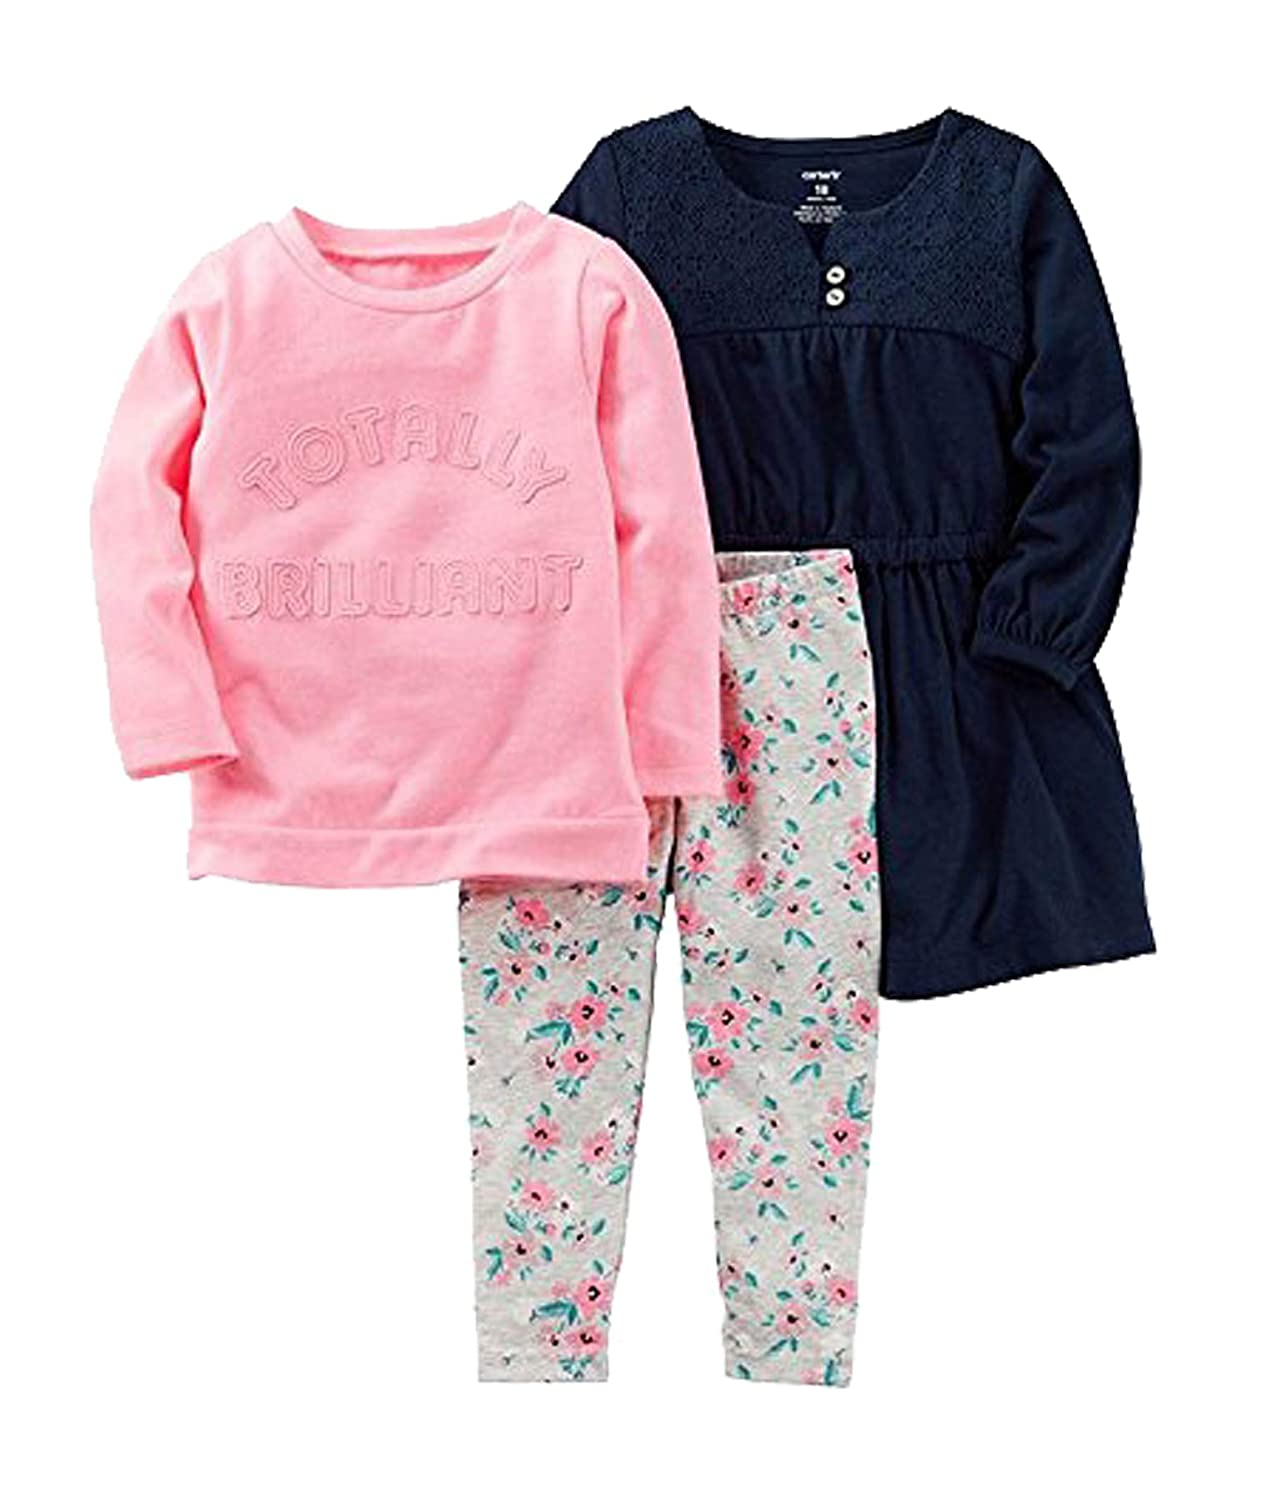 f525a3ccb9d57 Amazon.com: Carter's Toddler Girl Navy Dress, Totally Brilliant Top & Floral  Leggings Set Size 2T: Clothing